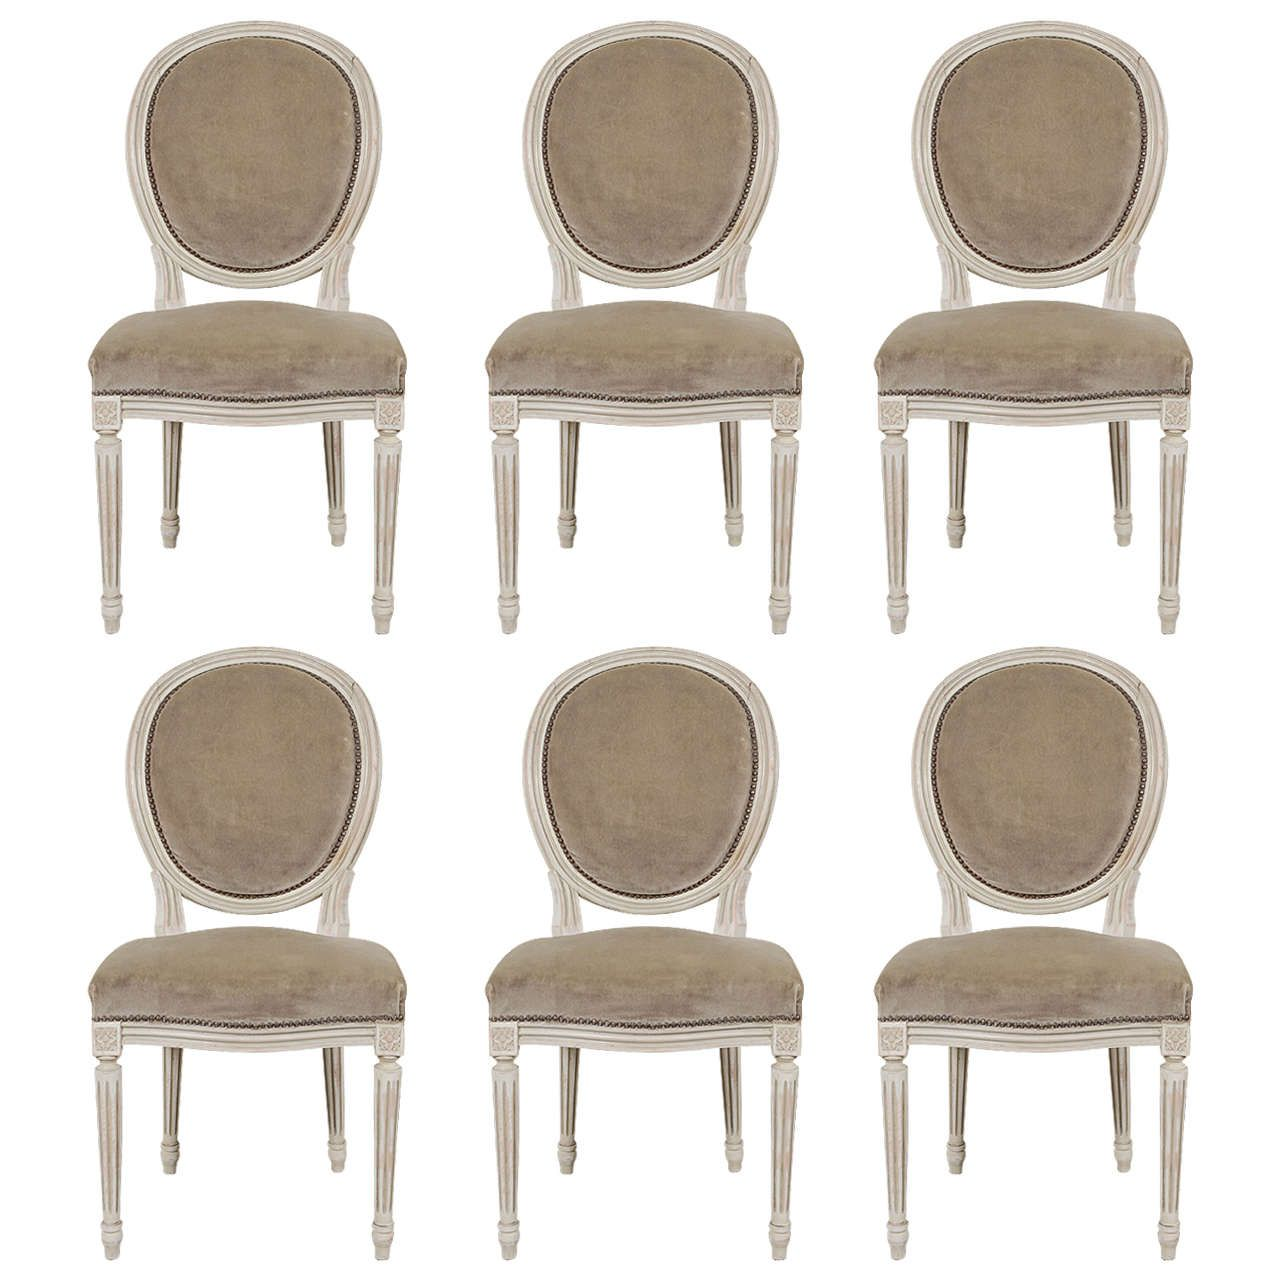 1900s Louis XVI Style Medallion Dining Chairs | Louis xvi and Fabrics